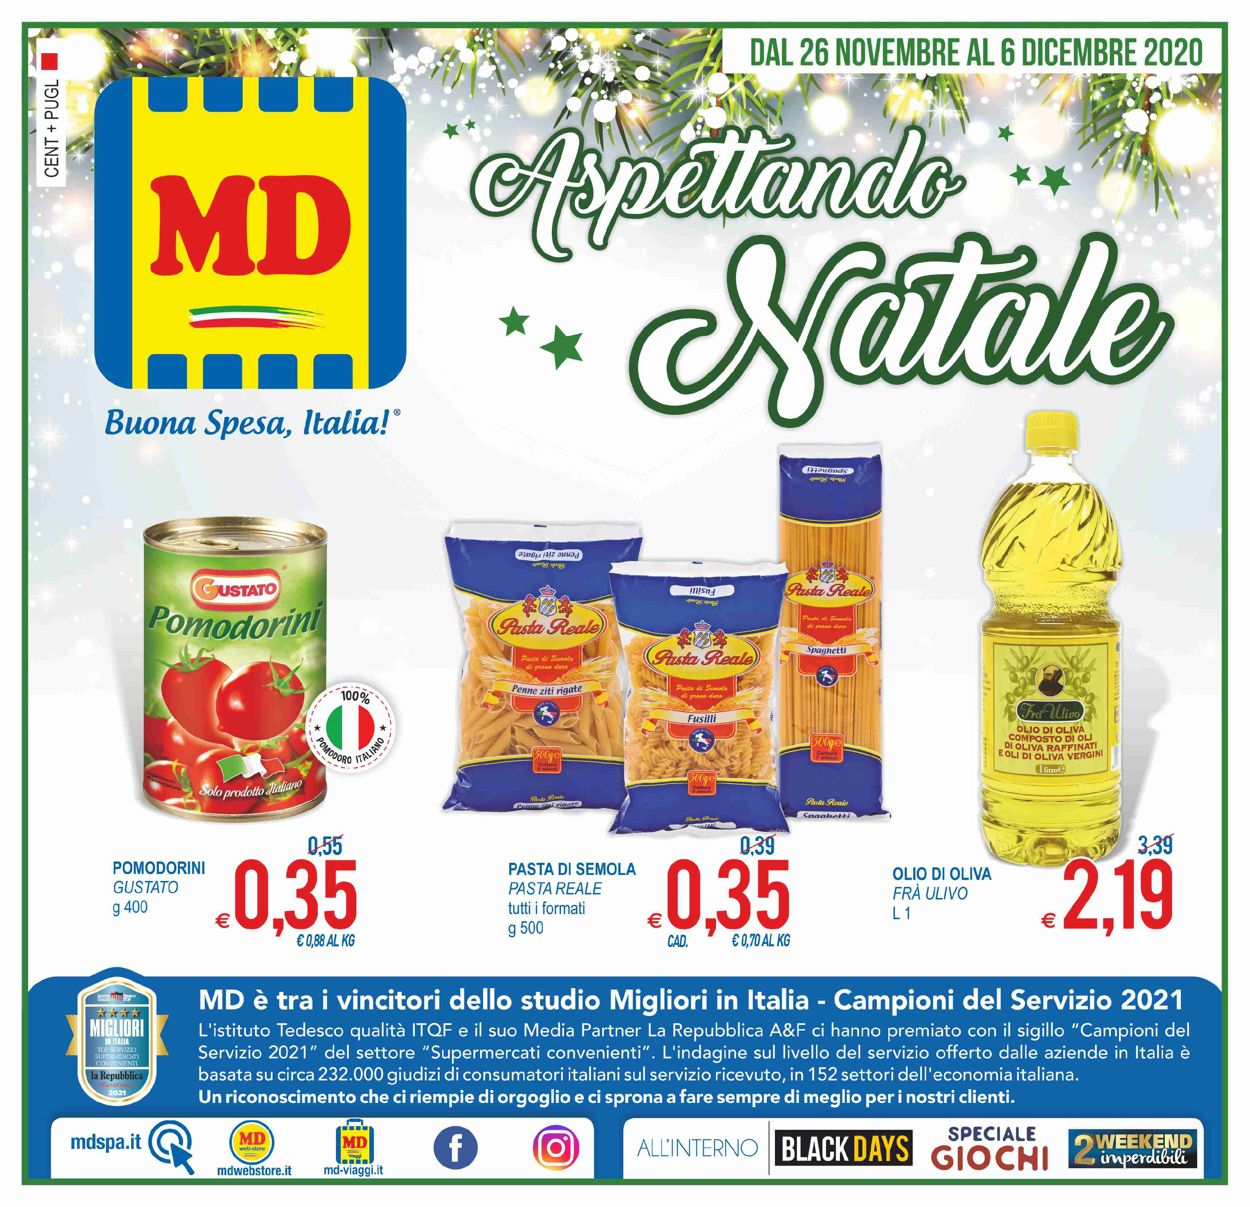 Volantino MD Discount - Black Friday 2020 - Offerte 26/11-06/12/2020